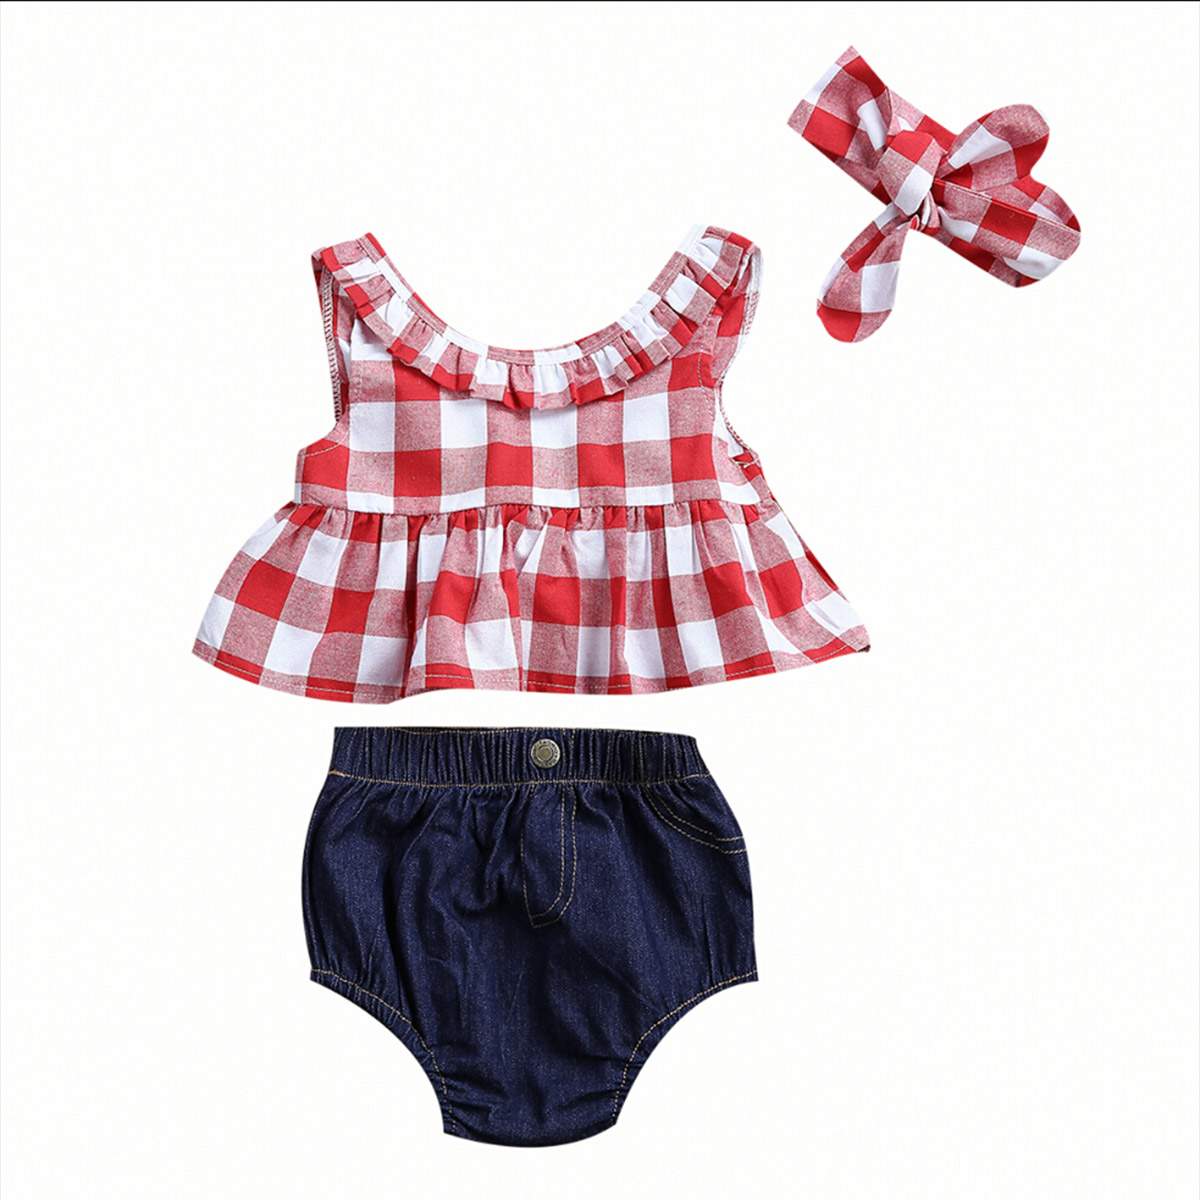 2018 Summer 3PCS Toddler Kids Clothes Red Plaid Skirted T-shirt Tops+Denim Shorts Bloomers Headband Outfit Children Clothing Set summer casual denim newborn toddler baby girl clothing kids off shoulder crop tops shorts outfit clothes set